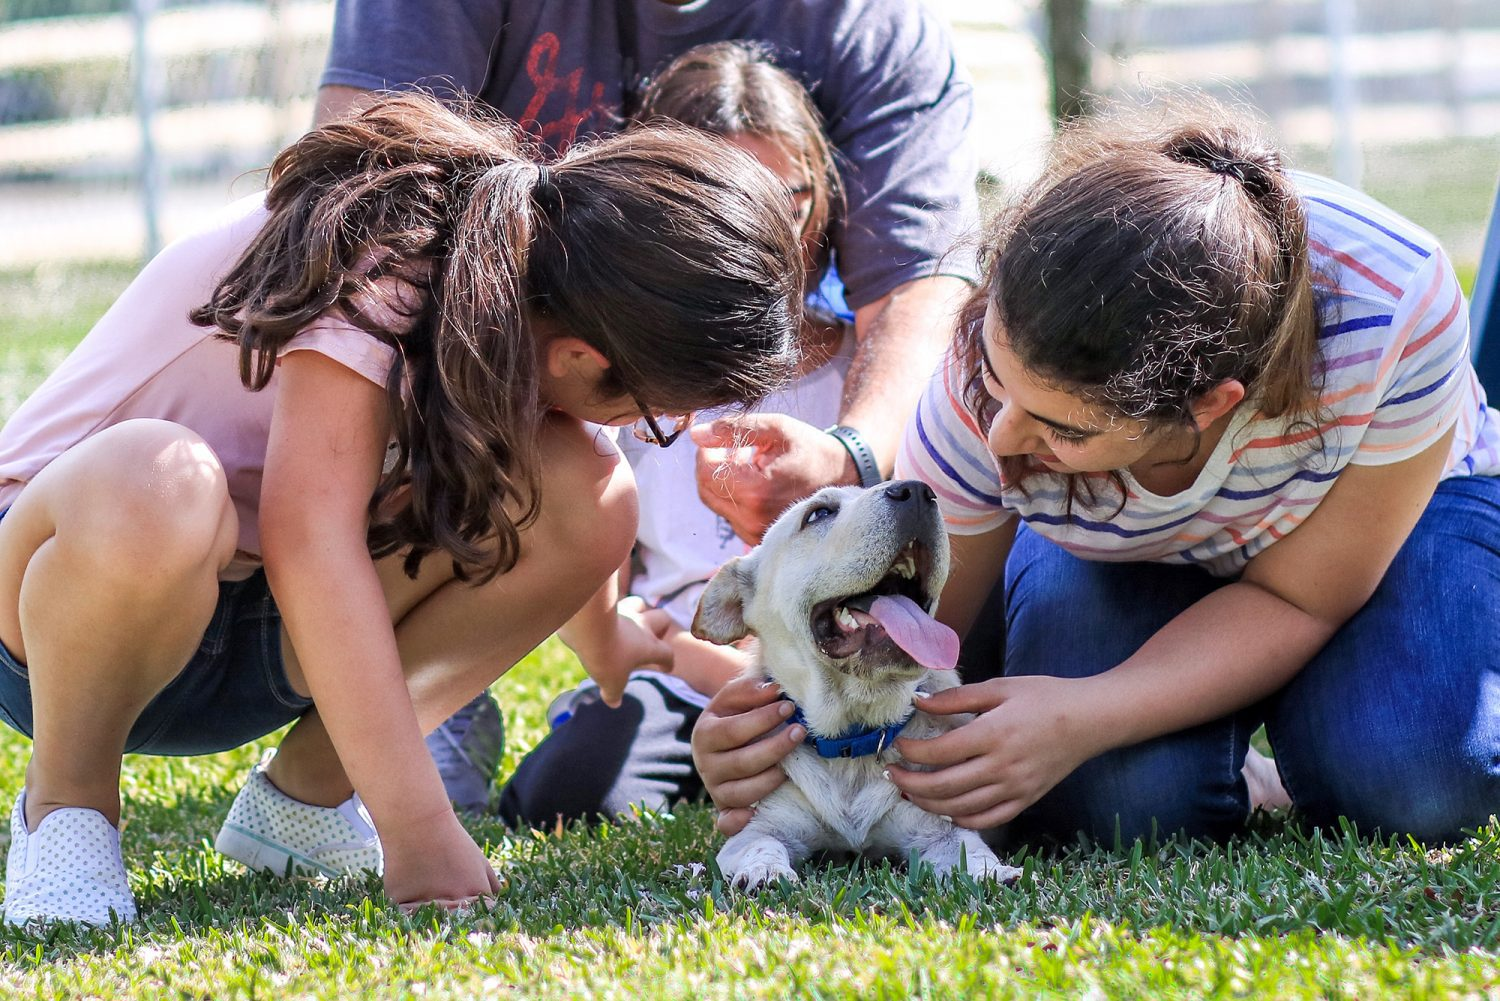 do dogs help with anxiety, anxiety, dogs, puppy, dog, Sharpei, Shar Pei, rescue dog, rescue puppy, getting a dog, mom blog, mom blogger, mommy blog, mommy blogger, 2018, family blog, parenting blog, the super mom life, thesupermomlife, parenting blogger, family blogger